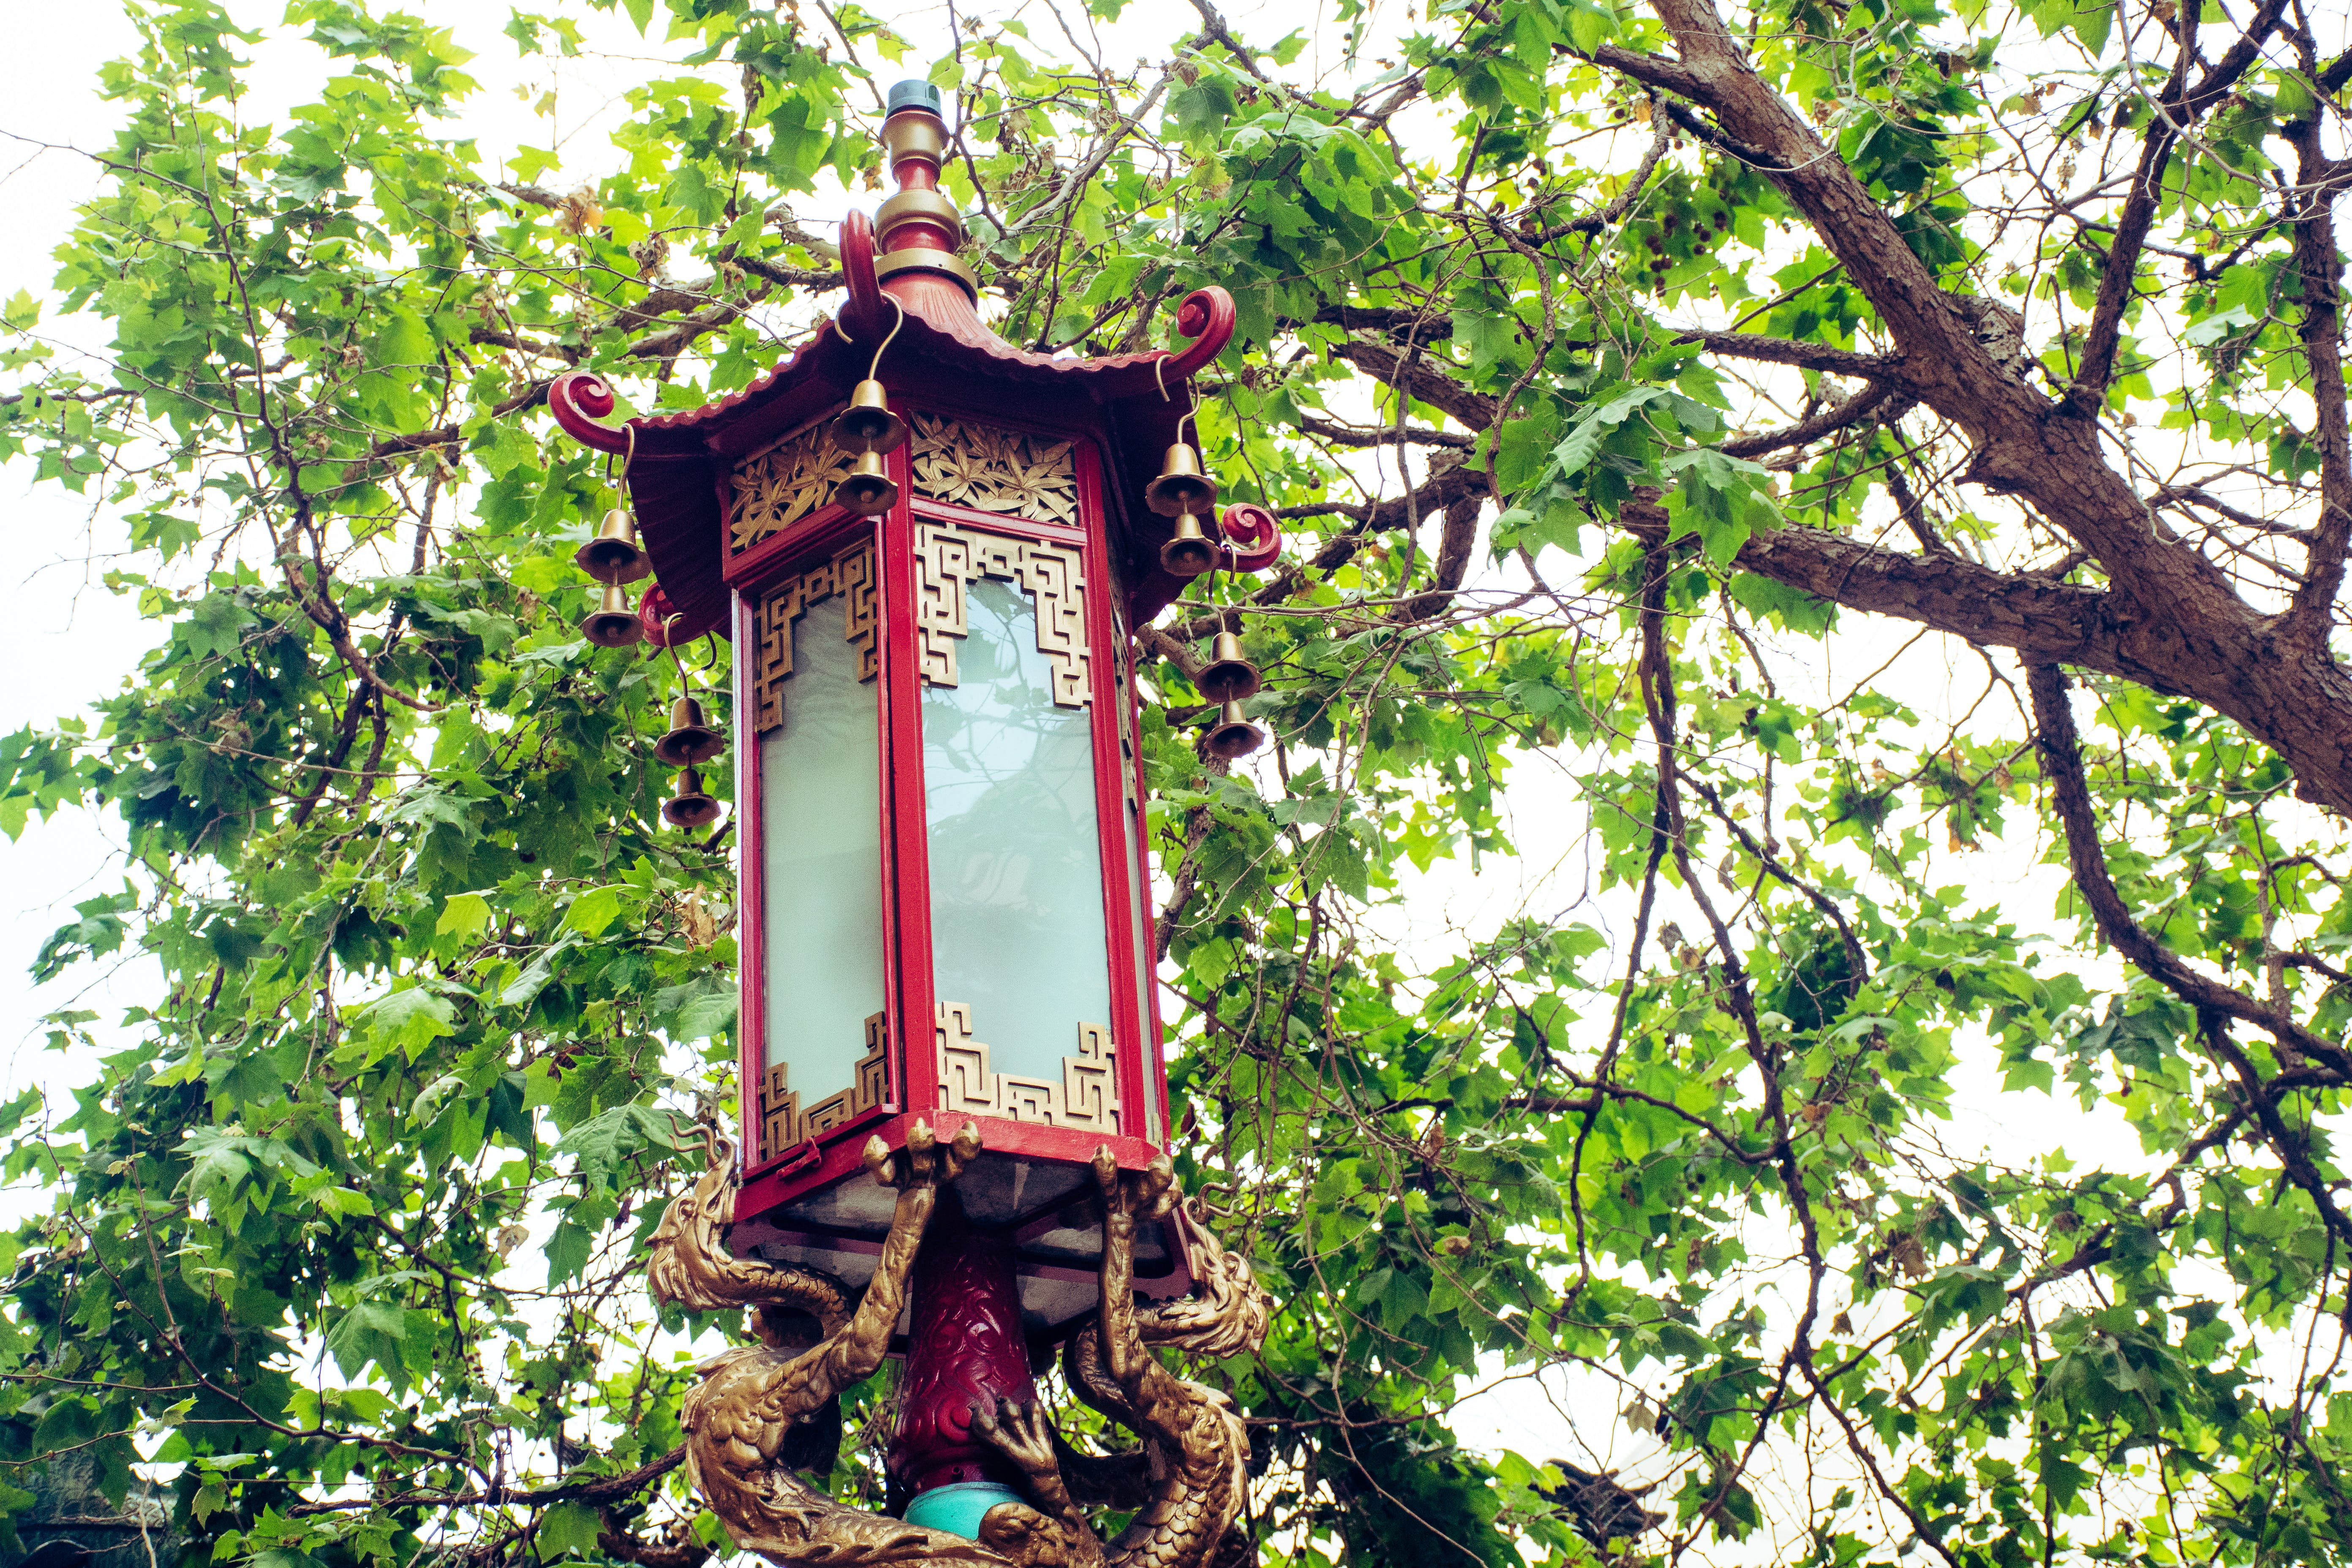 Red and Brown Light Post Under Green Leaf Tree